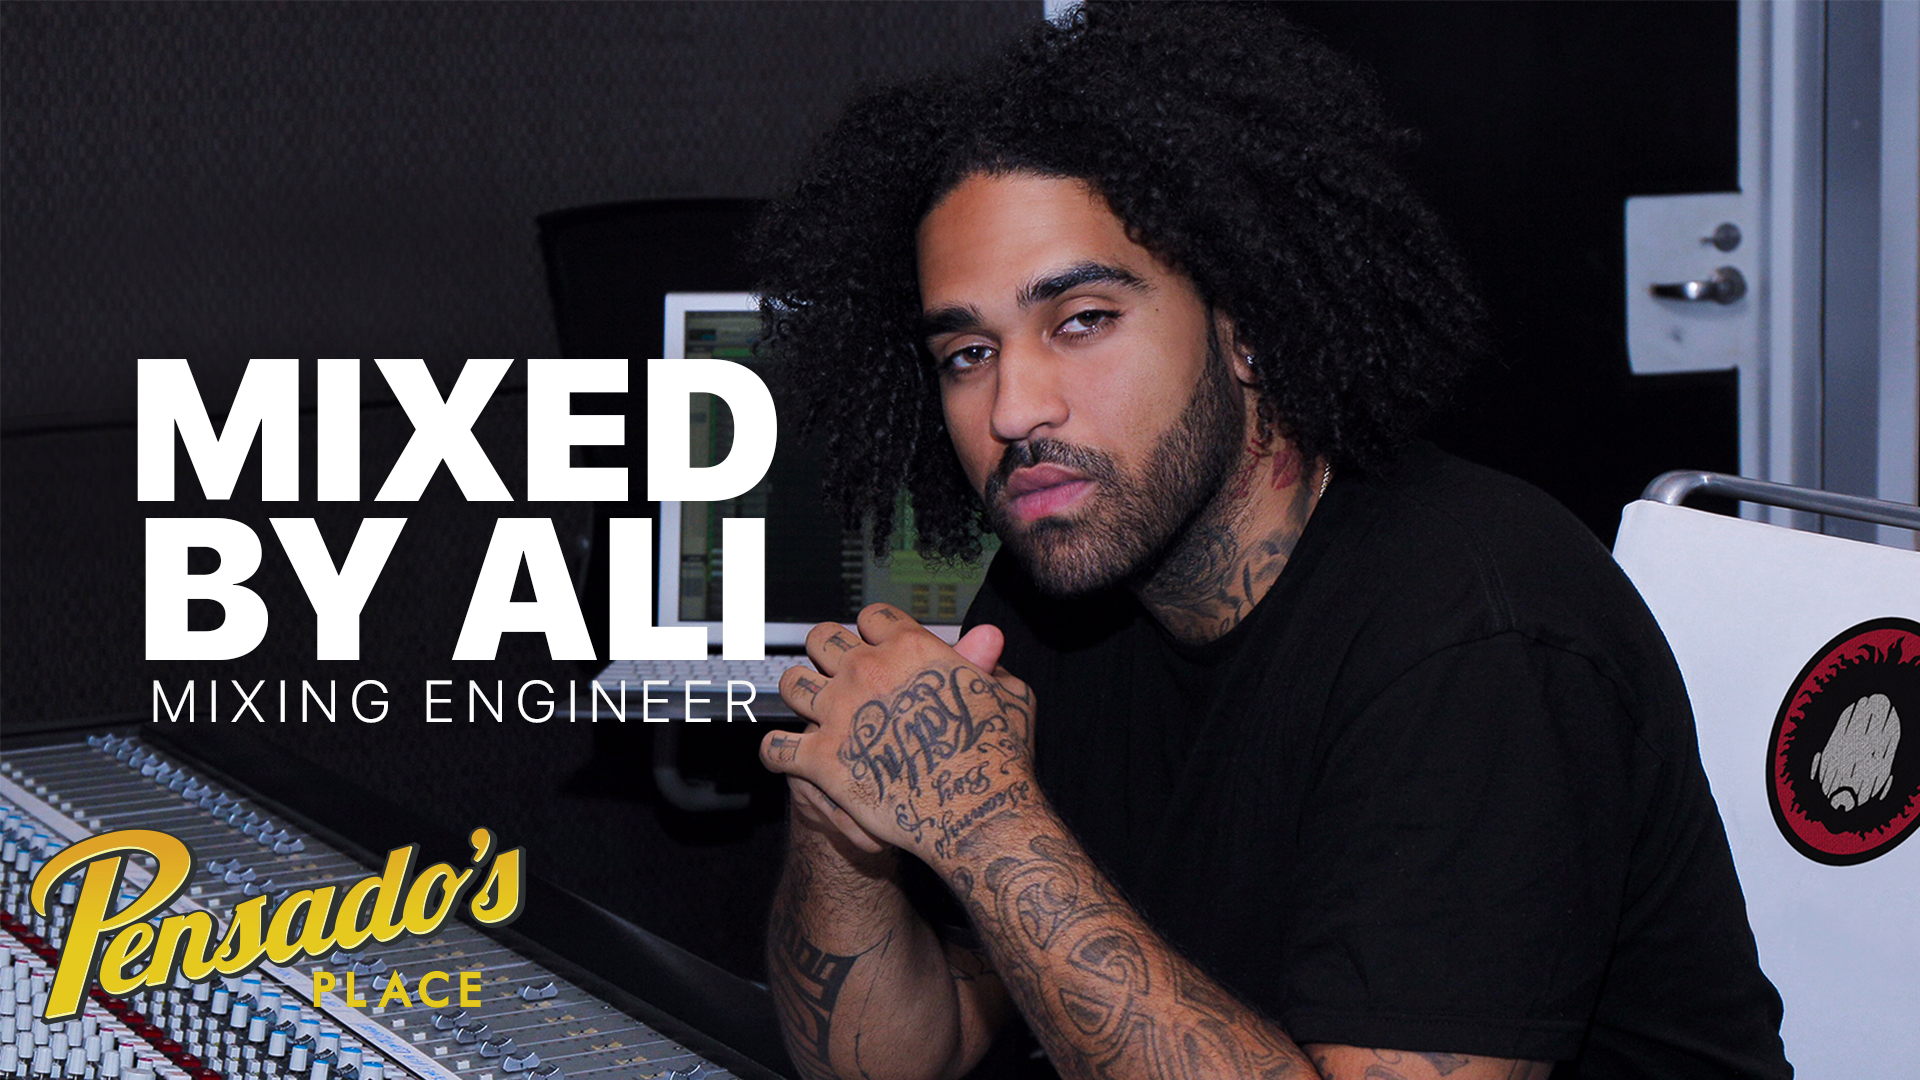 Grammy Award Winning Mix Engineer, MixedByAli